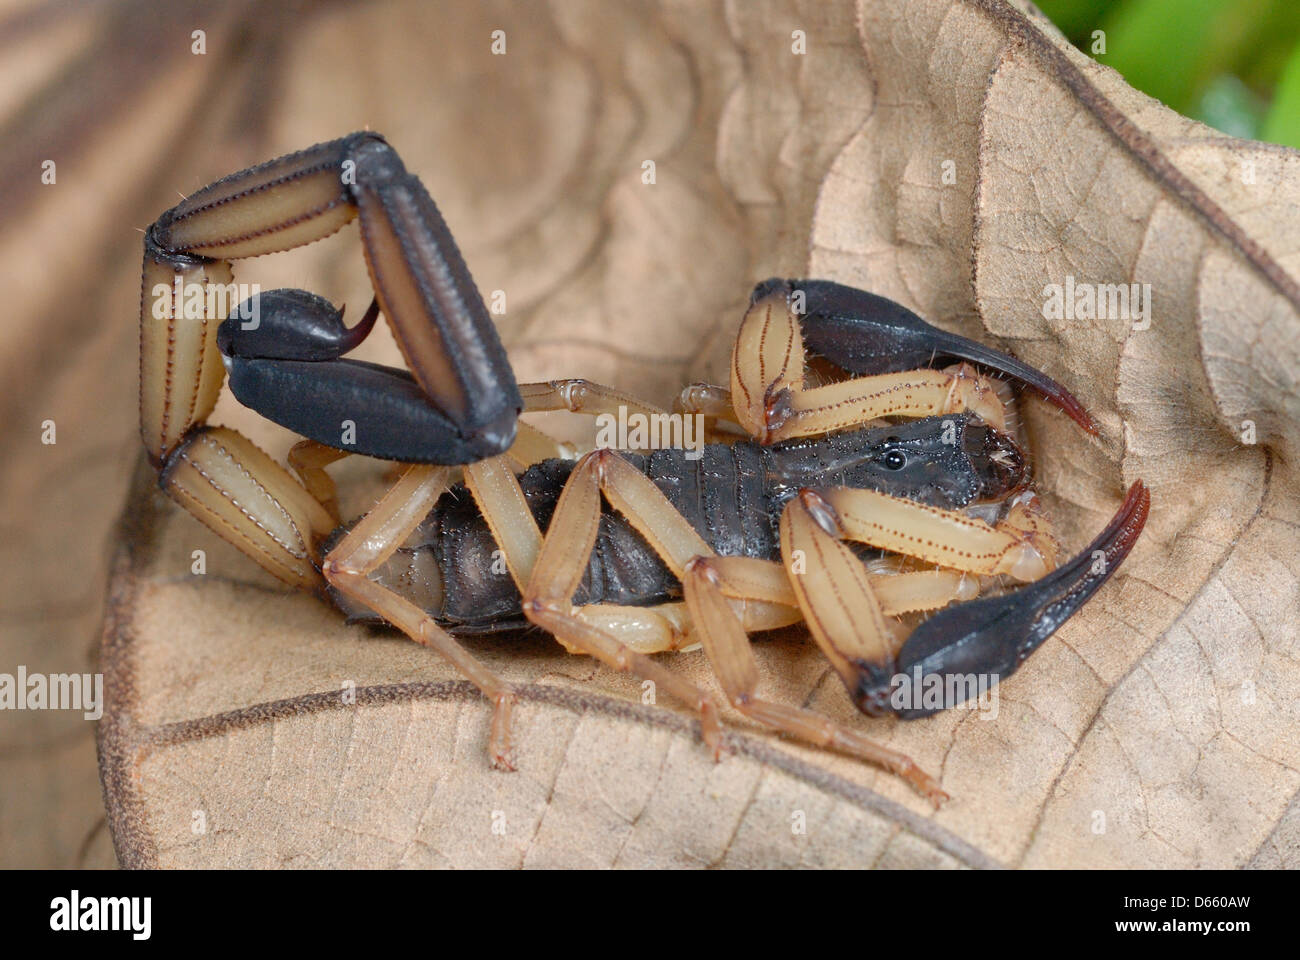 Bark Scorpion (Centruroides bicolour) in Costa Rica rainforest - Stock Image